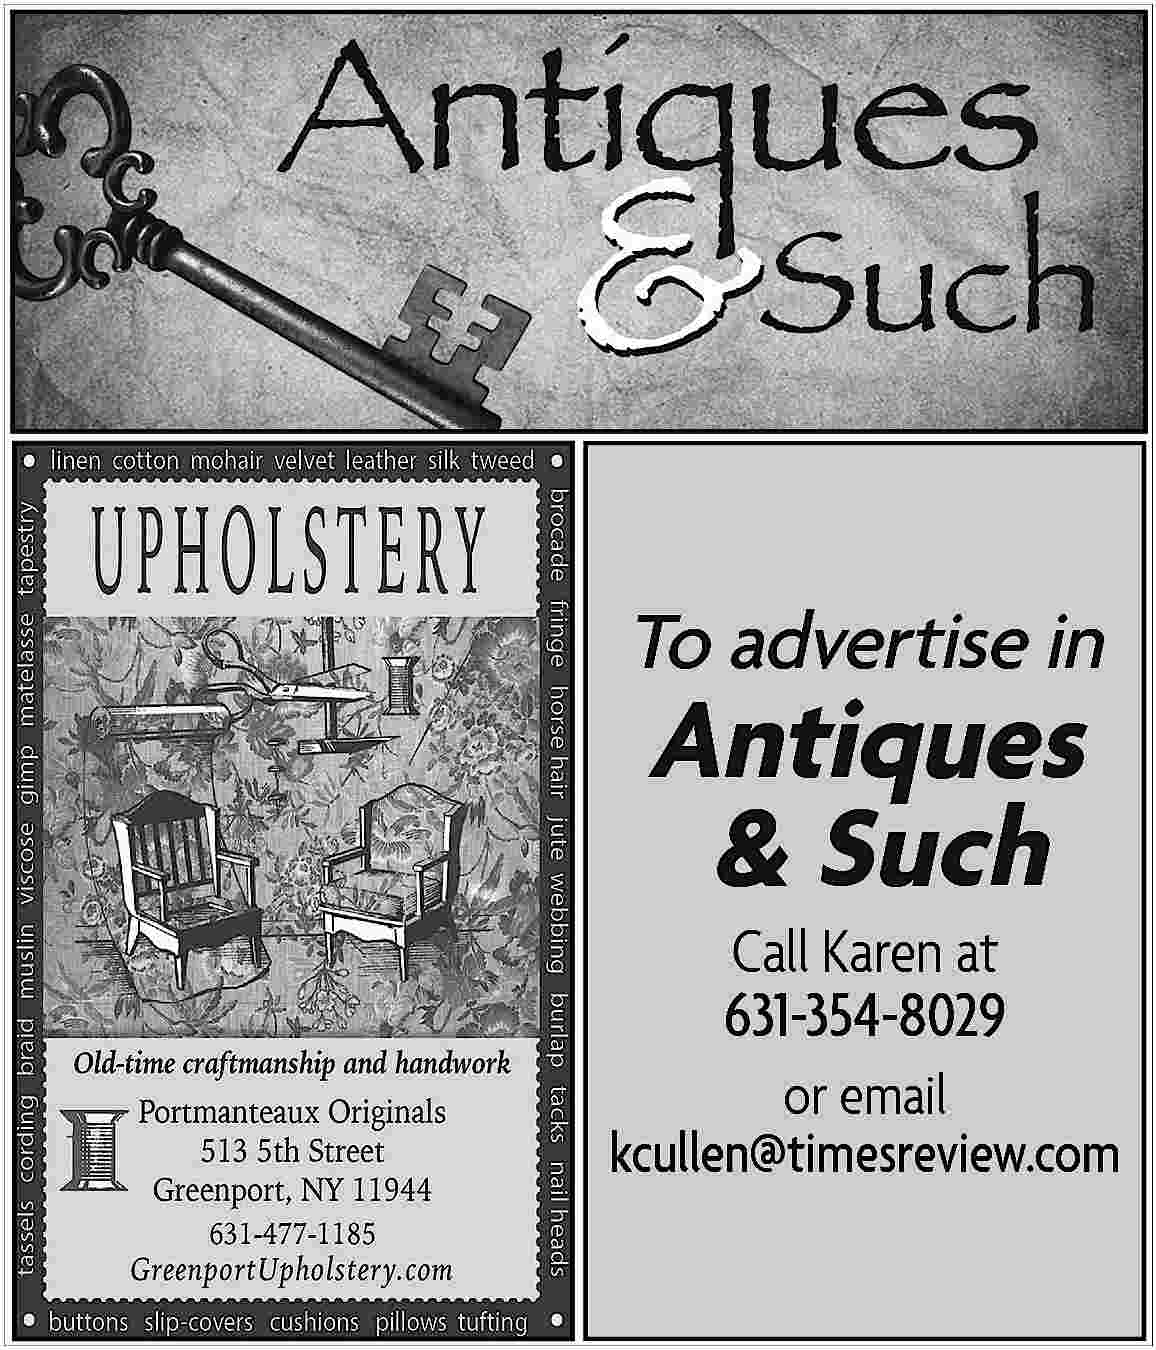 To advertise in Antiques To advertise in  Antiques & Such Call Karen at 631-354-8029  or email kcullen@timesreview.com